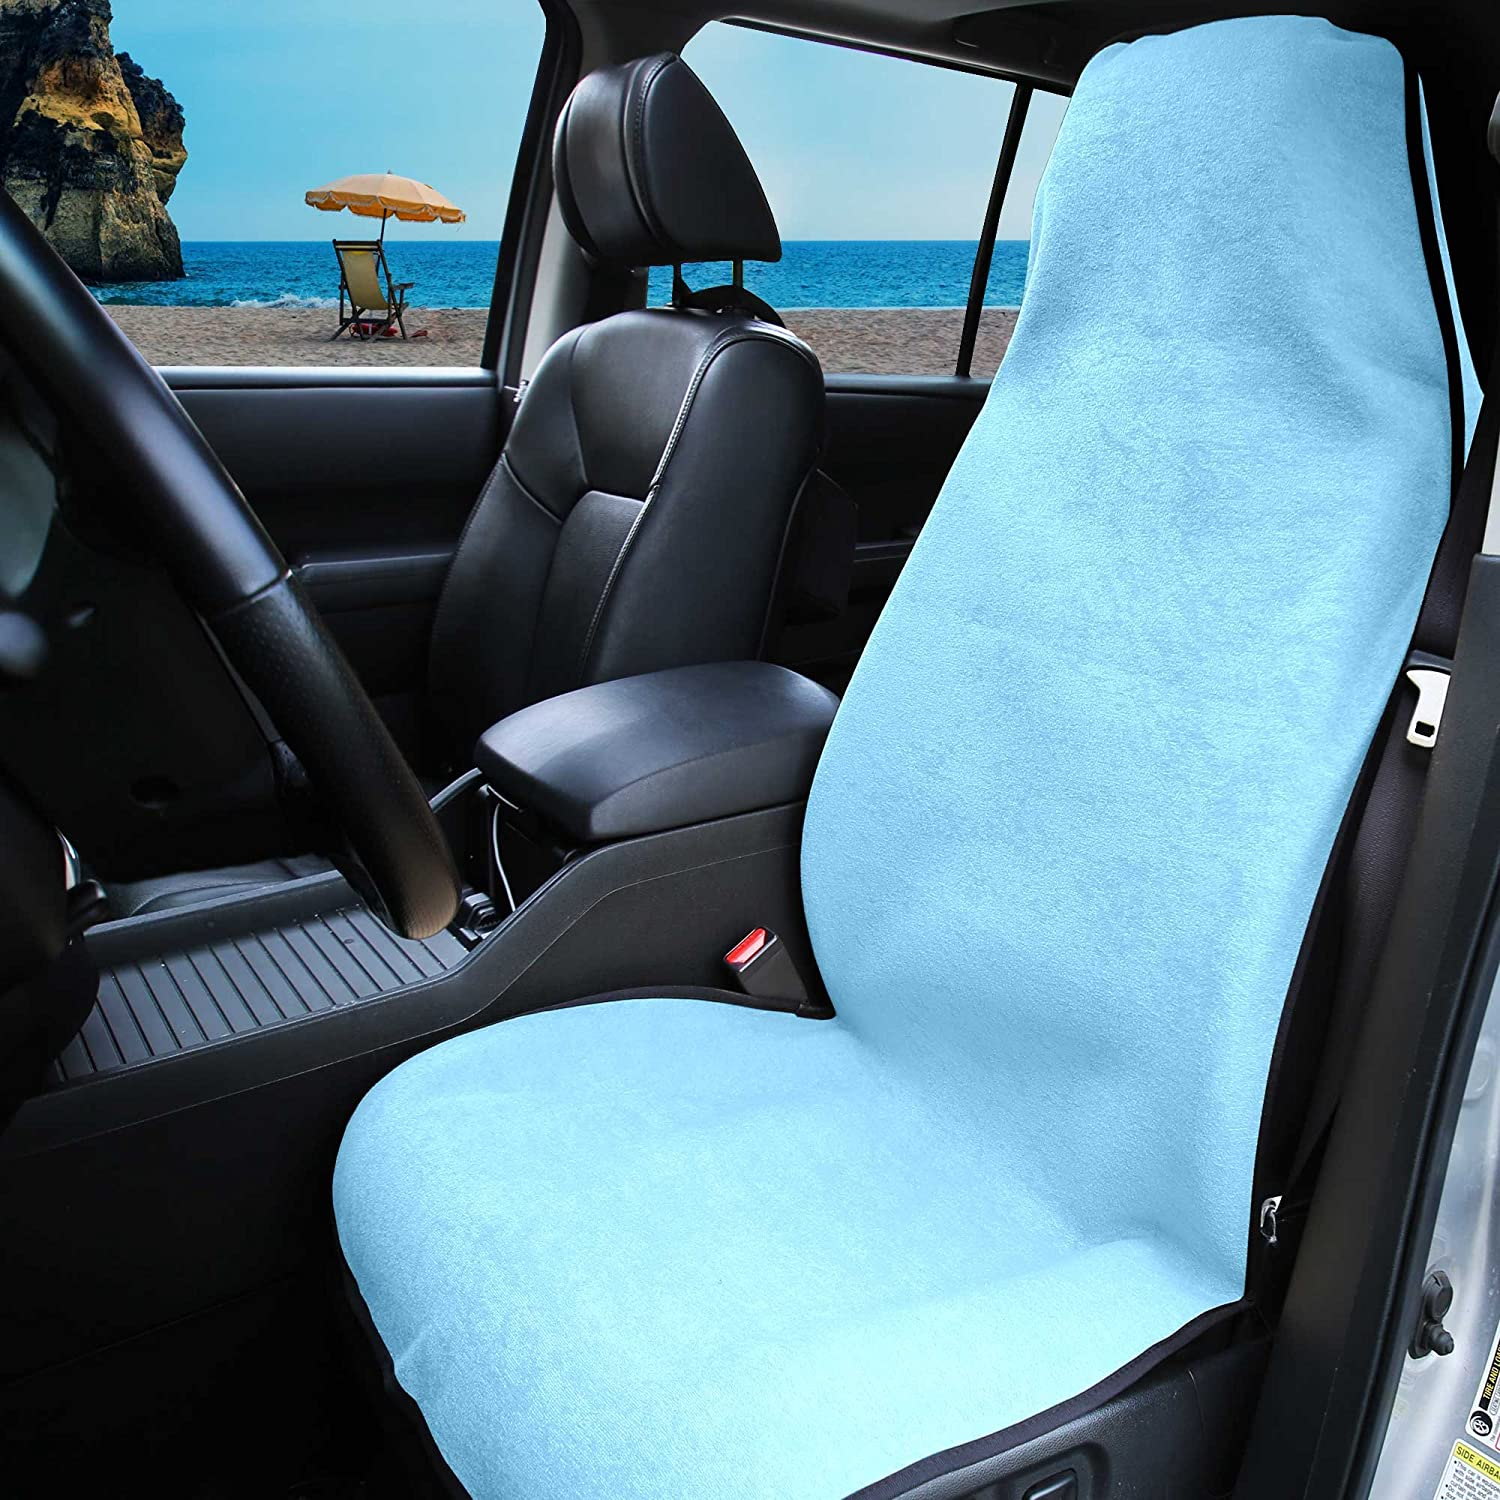 Wondrous Fh Group Fh1006Lightblue Water Resistant Quick Dry Car Seat Cover Workouts Gym Yoga Beach Anti Slip Ibusinesslaw Wood Chair Design Ideas Ibusinesslaworg